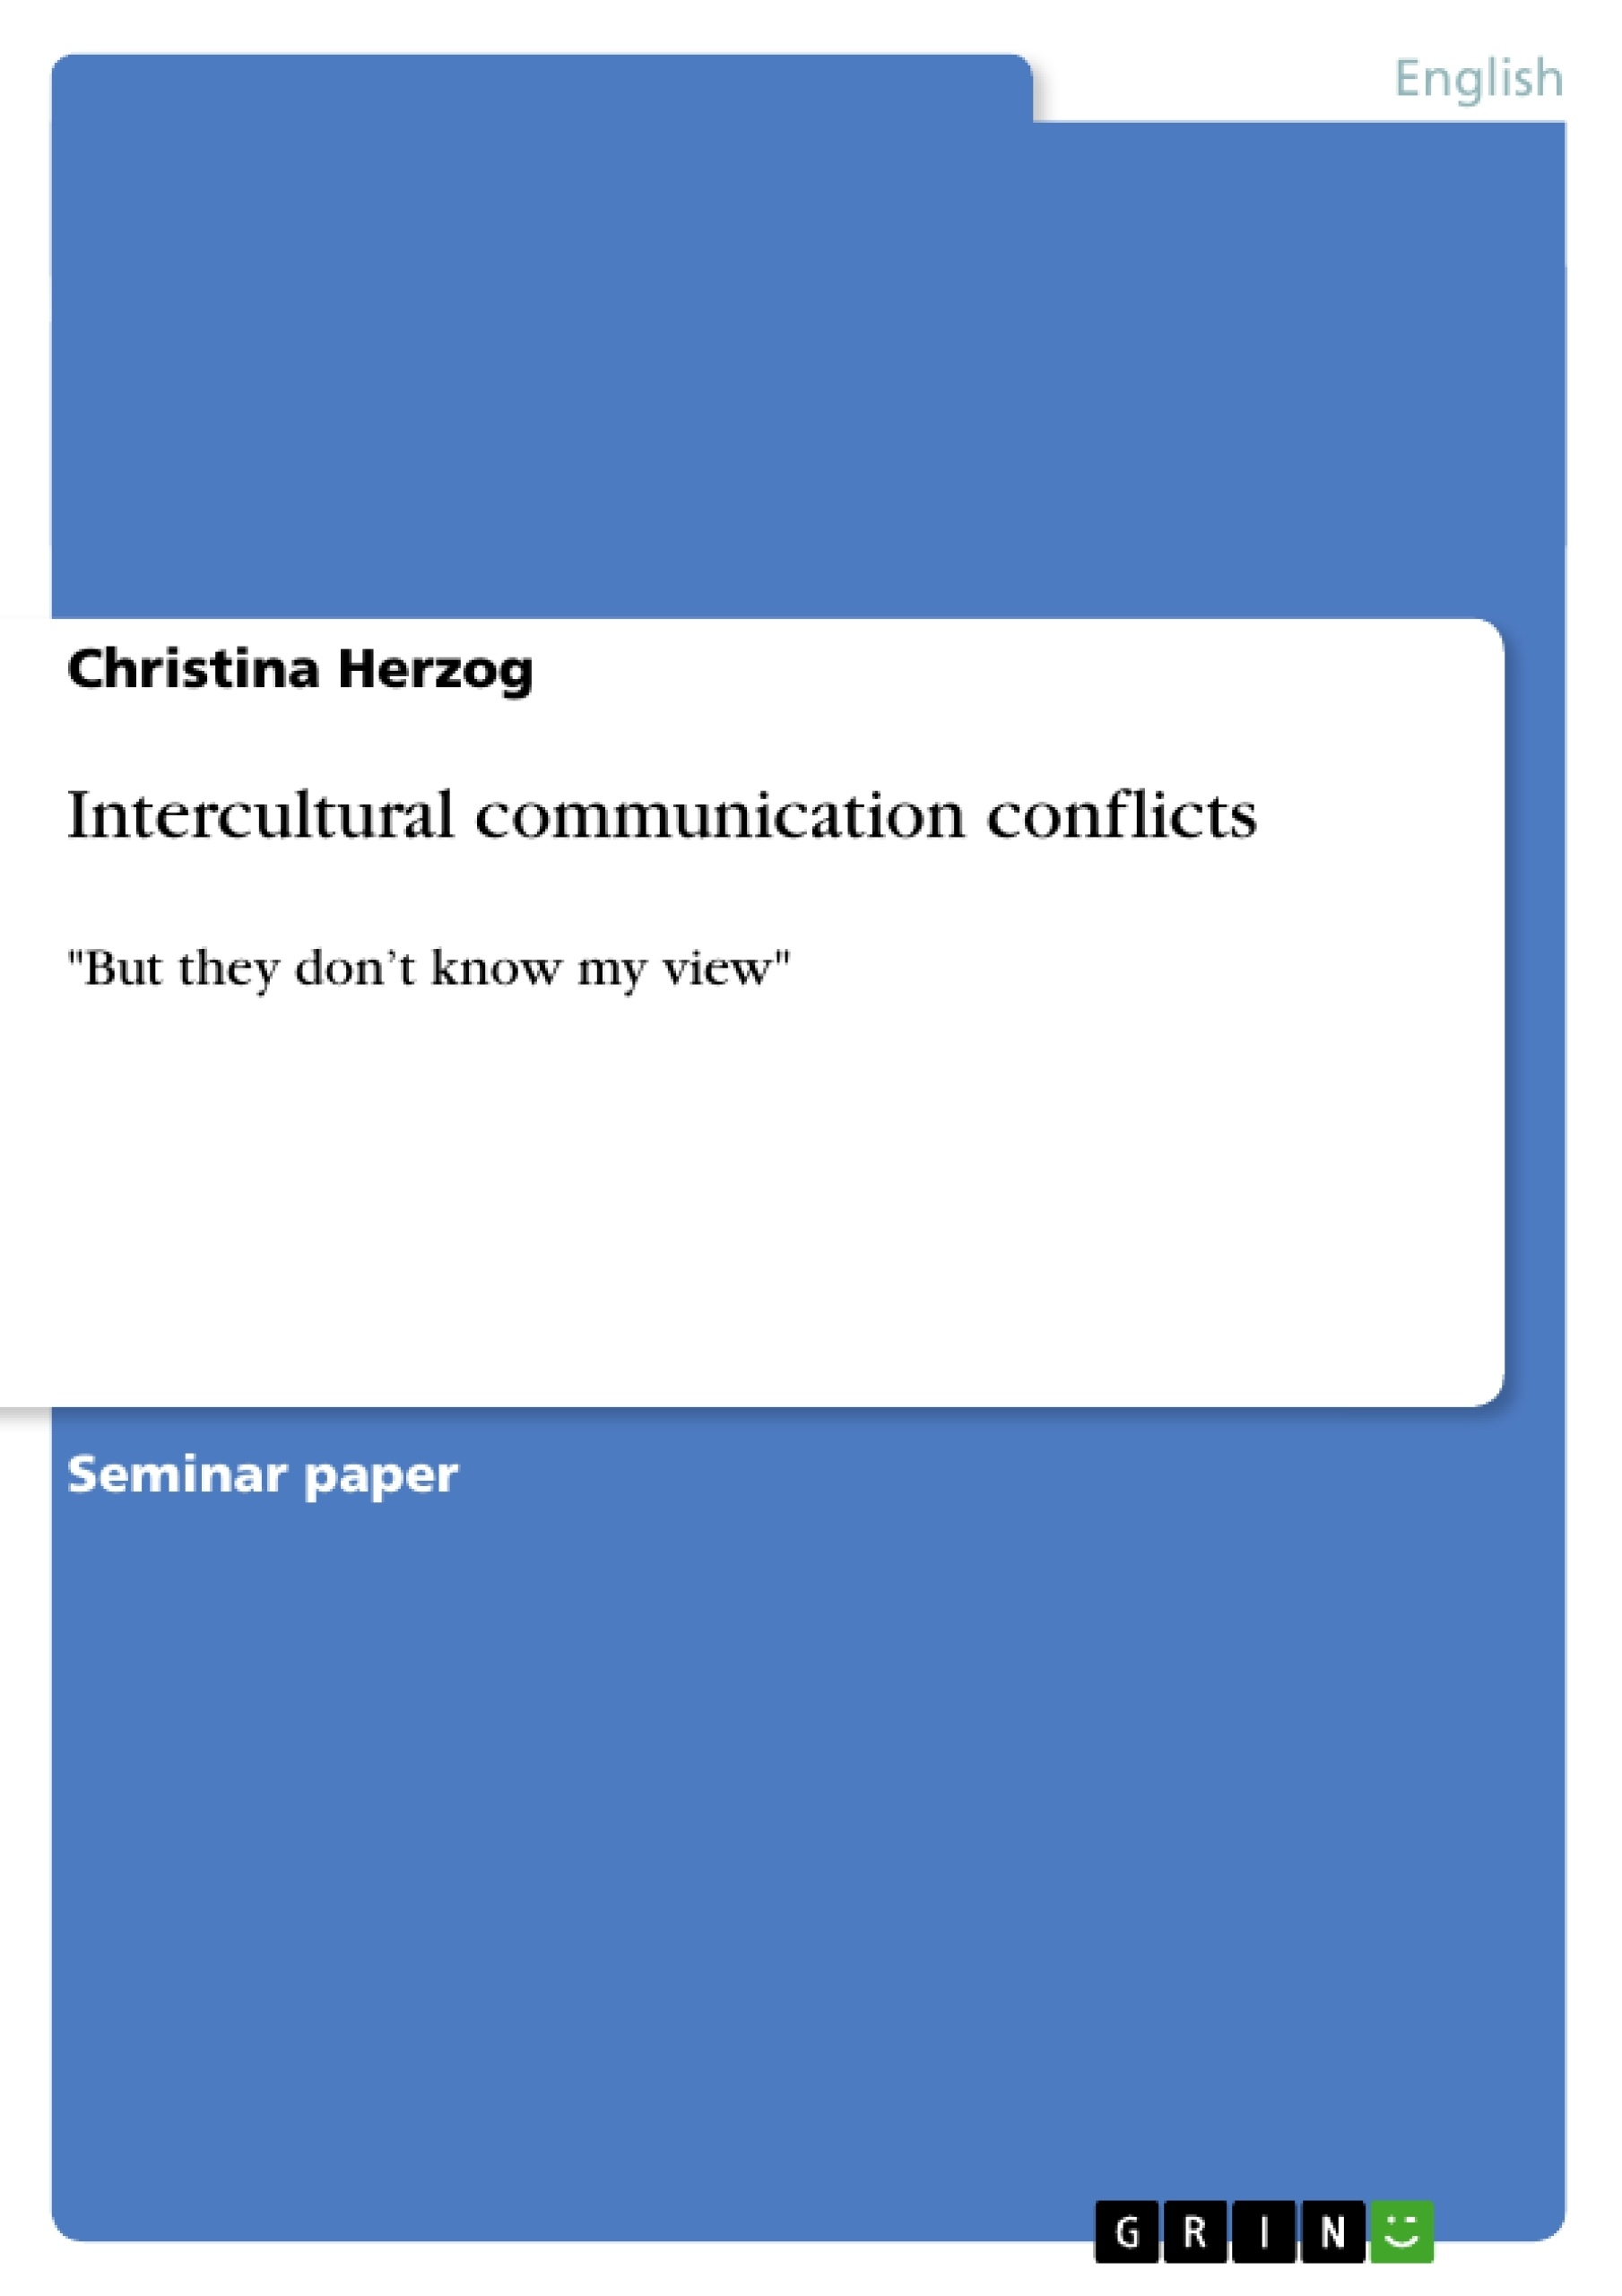 Title: Intercultural communication conflicts